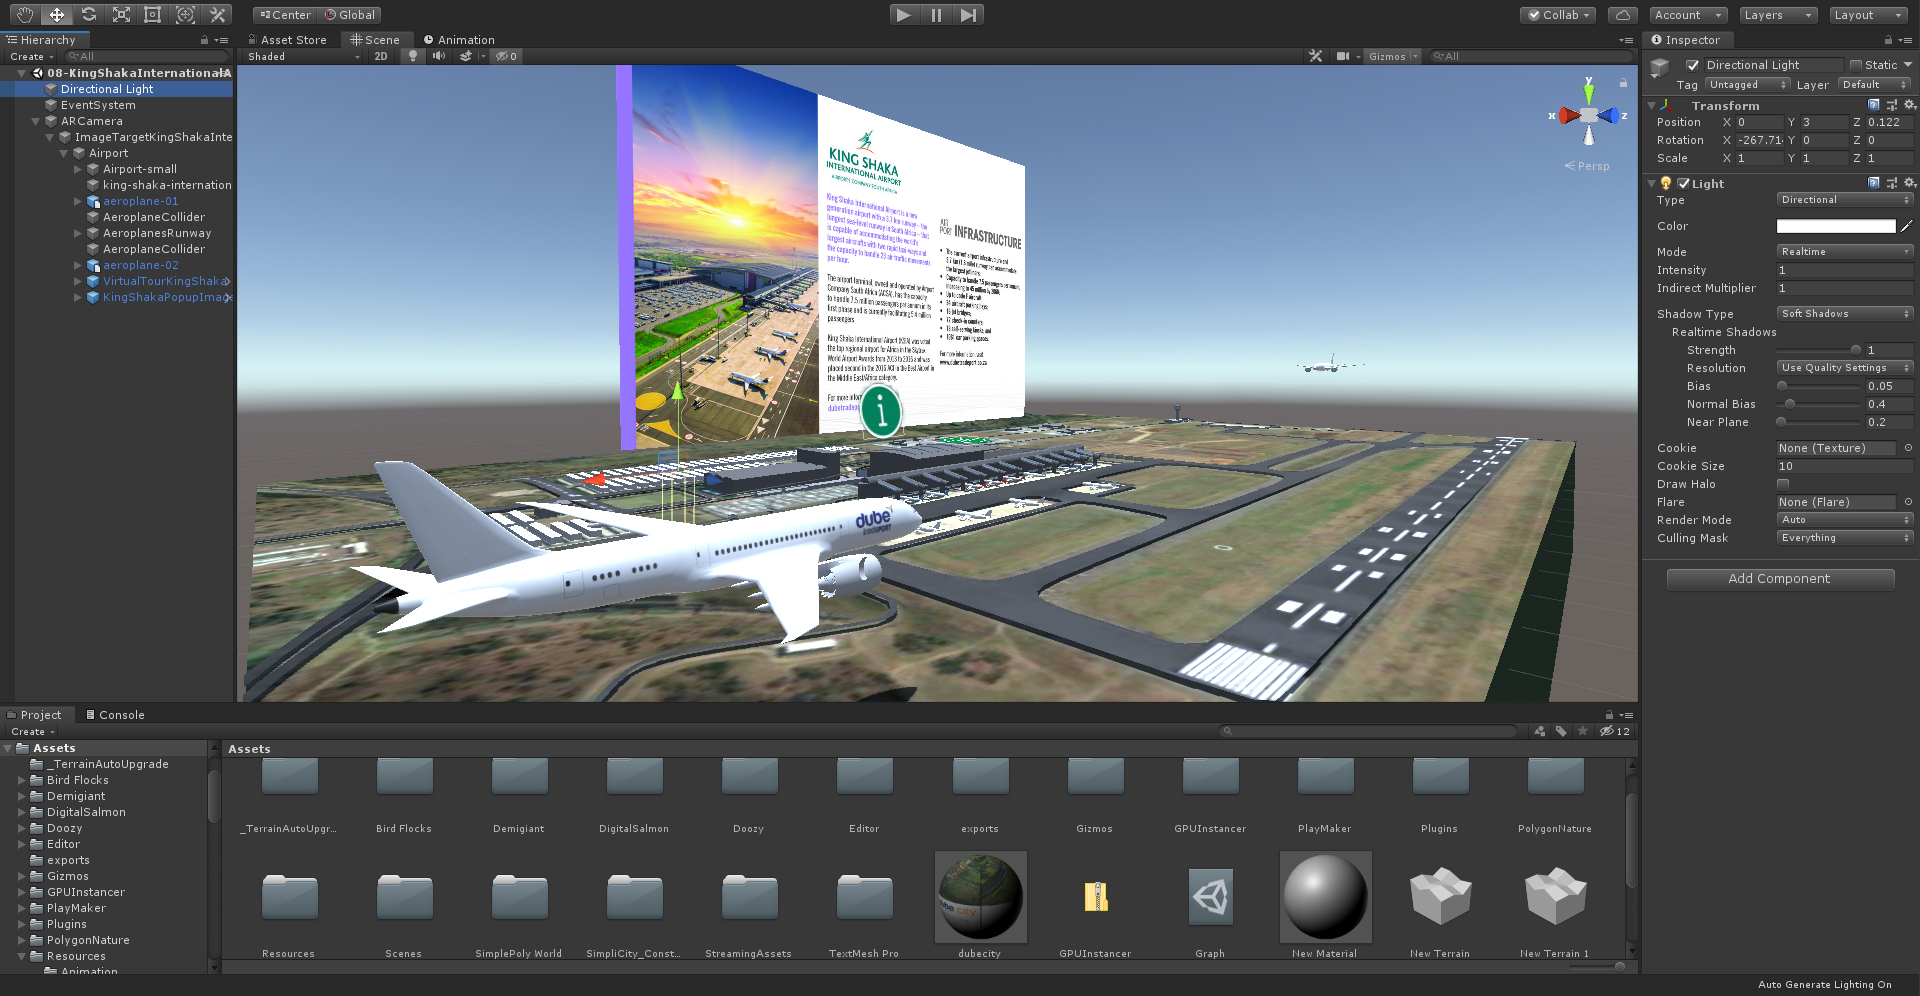 King Shaka International Airport Augmented Reality Application